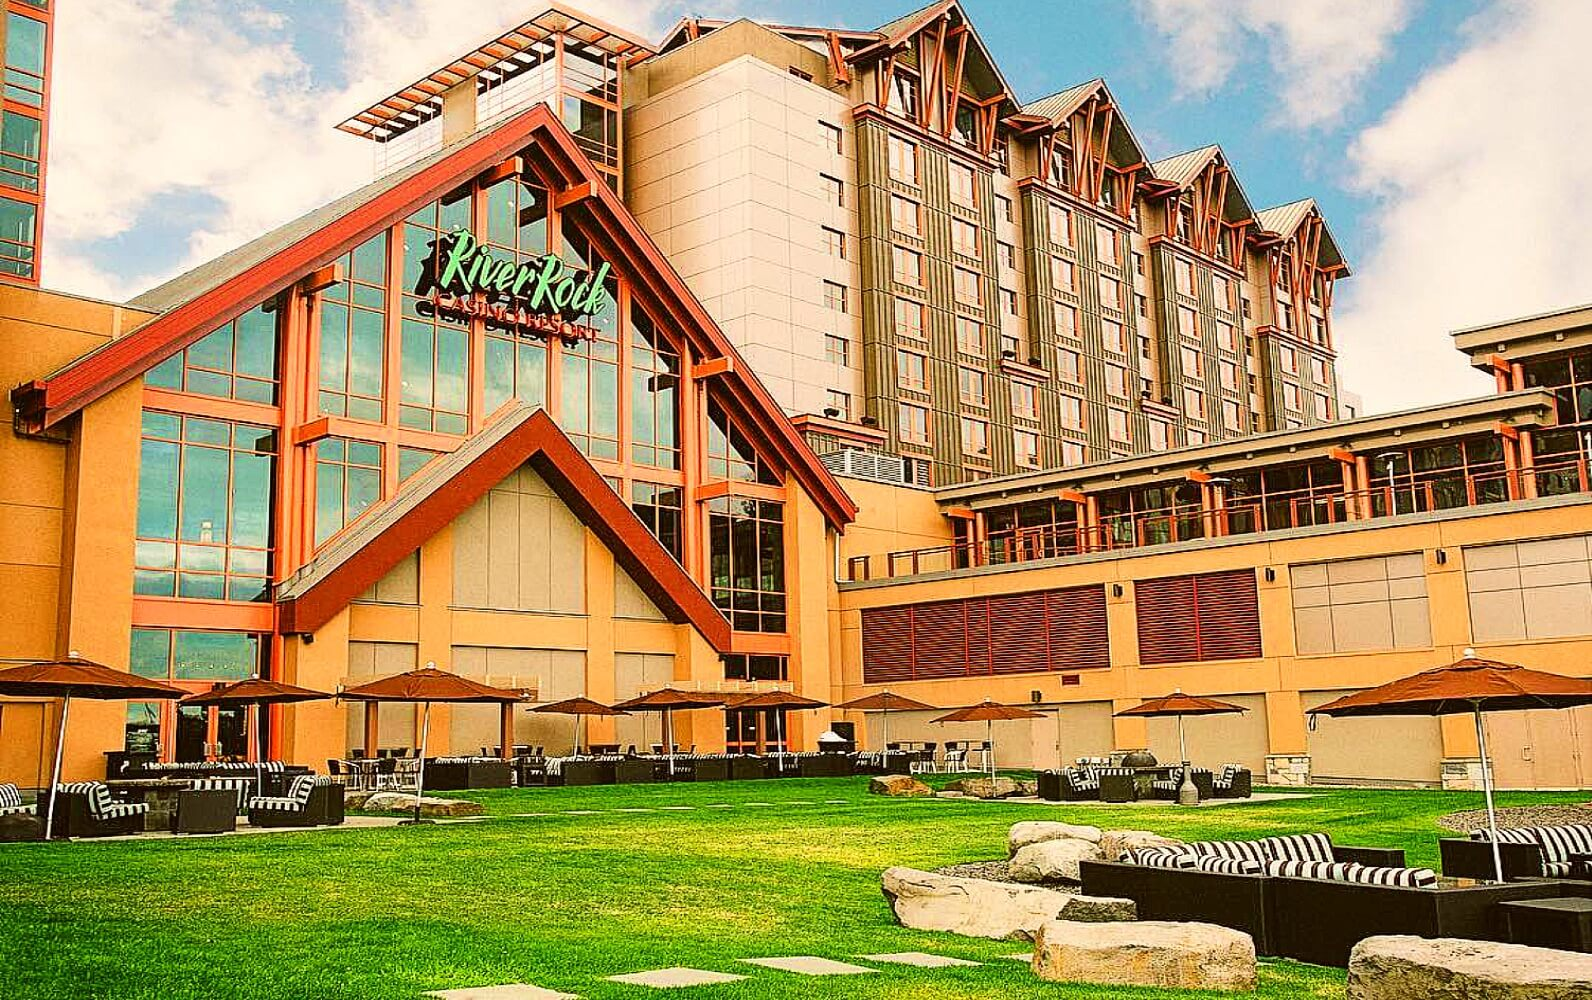 The back of the River Rock Casino Resort